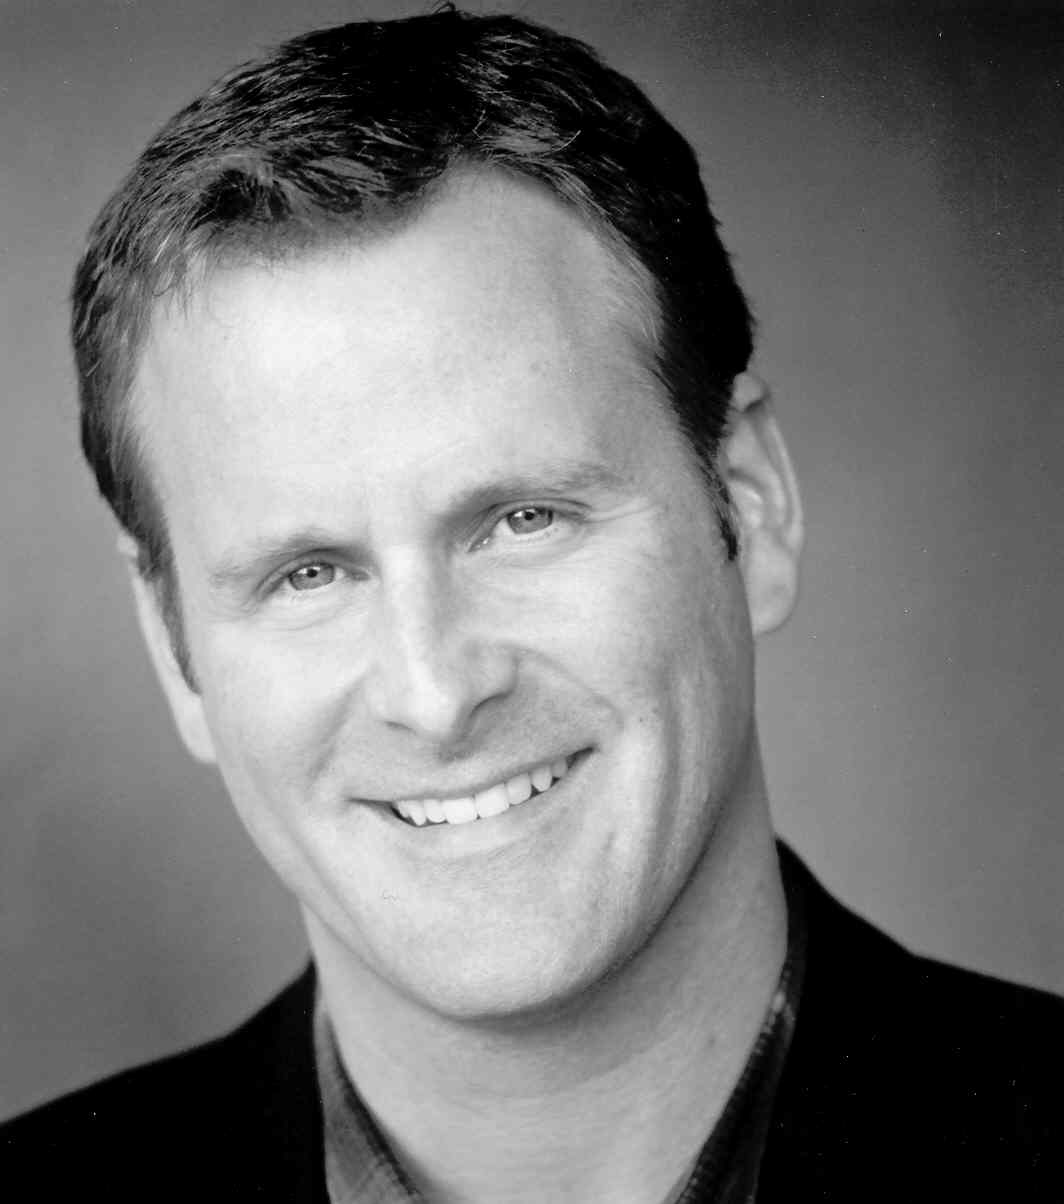 dave coulier facebookdave coulier height, dave coulier wiki, dave coulier facebook, dave coulier full house, dave coulier net worth, dave coulier sister, dave coulier wife, dave coulier alanis morissette breakup, dave coulier snl, dave coulier dead, dave coulier stand up, dave coulier how i met your mother, dave coulier son, dave coulier net worth 2015, dave coulier sister death, dave coulier wedding, dave coulier sister died, dave coulier imdb, dave coulier and jeff daniels, dave coulier instagram